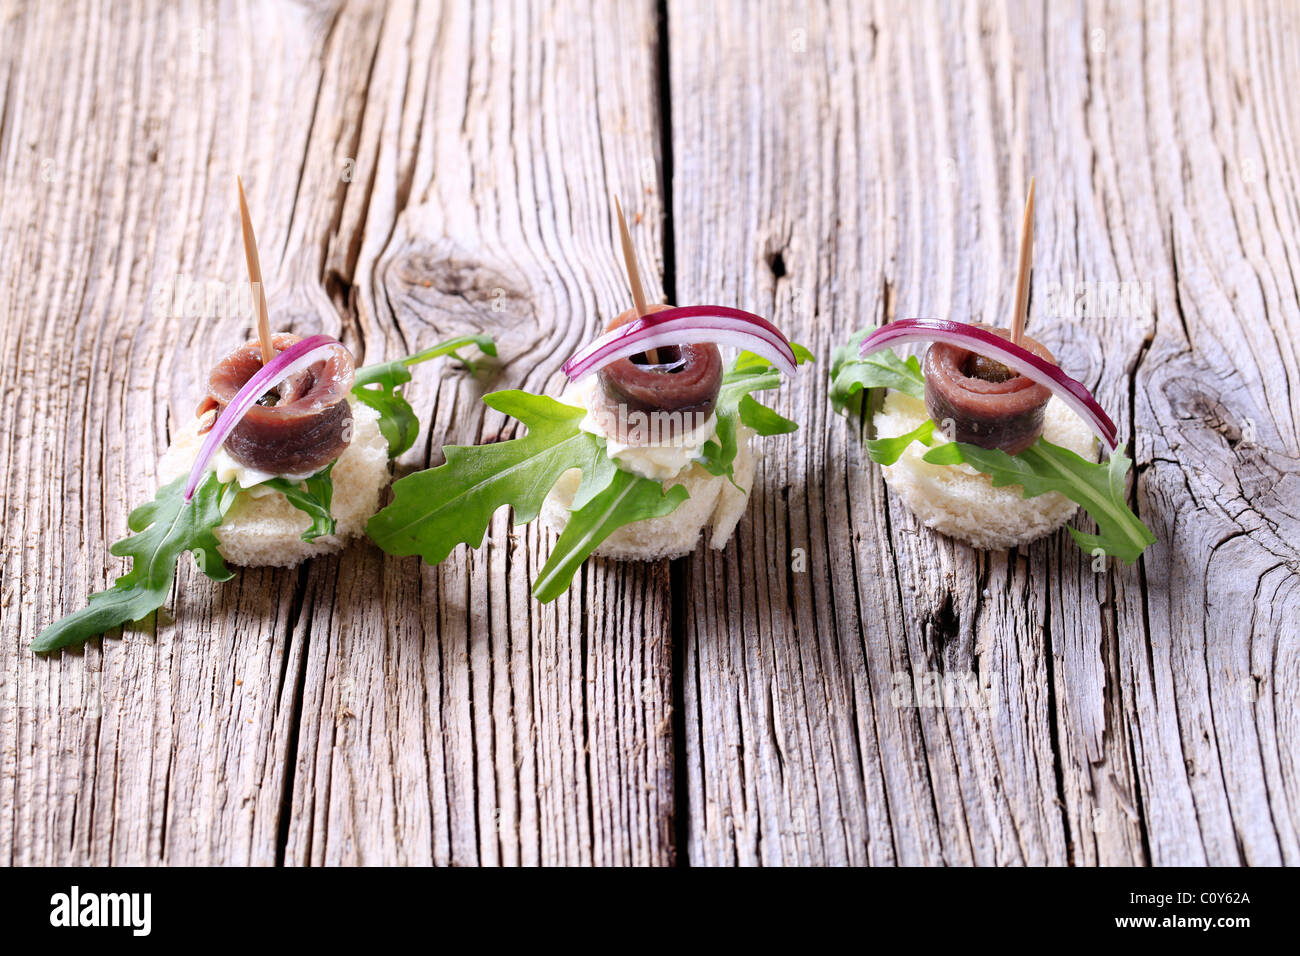 Anchovy canapes garnished with greens and onion - Stock Image